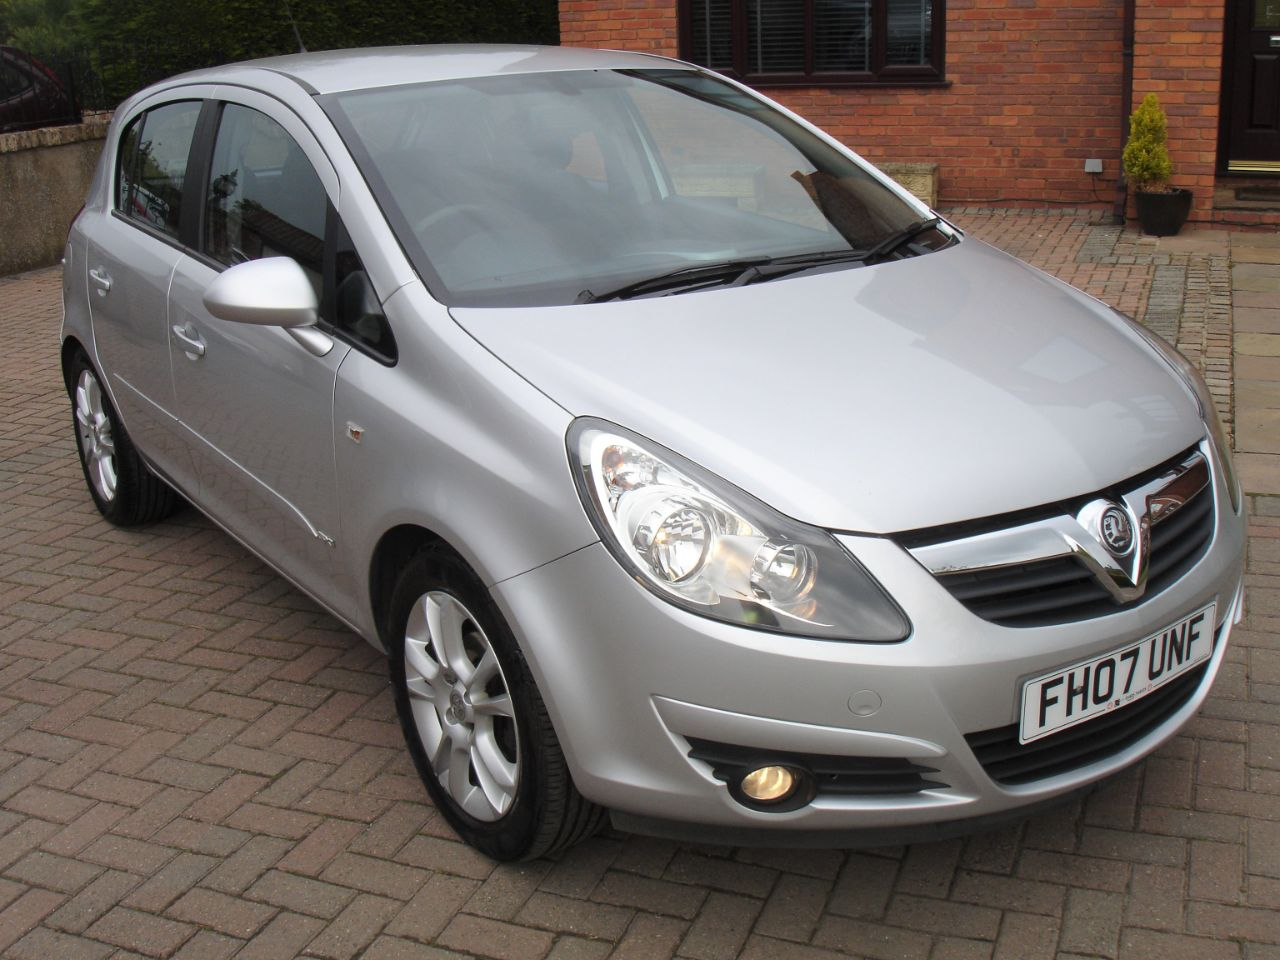 Vauxhall Corsa 1.2i 16V SXi 5dr [AC] Hatchback Petrol Star Silver Metallic at Level Pitch Selby